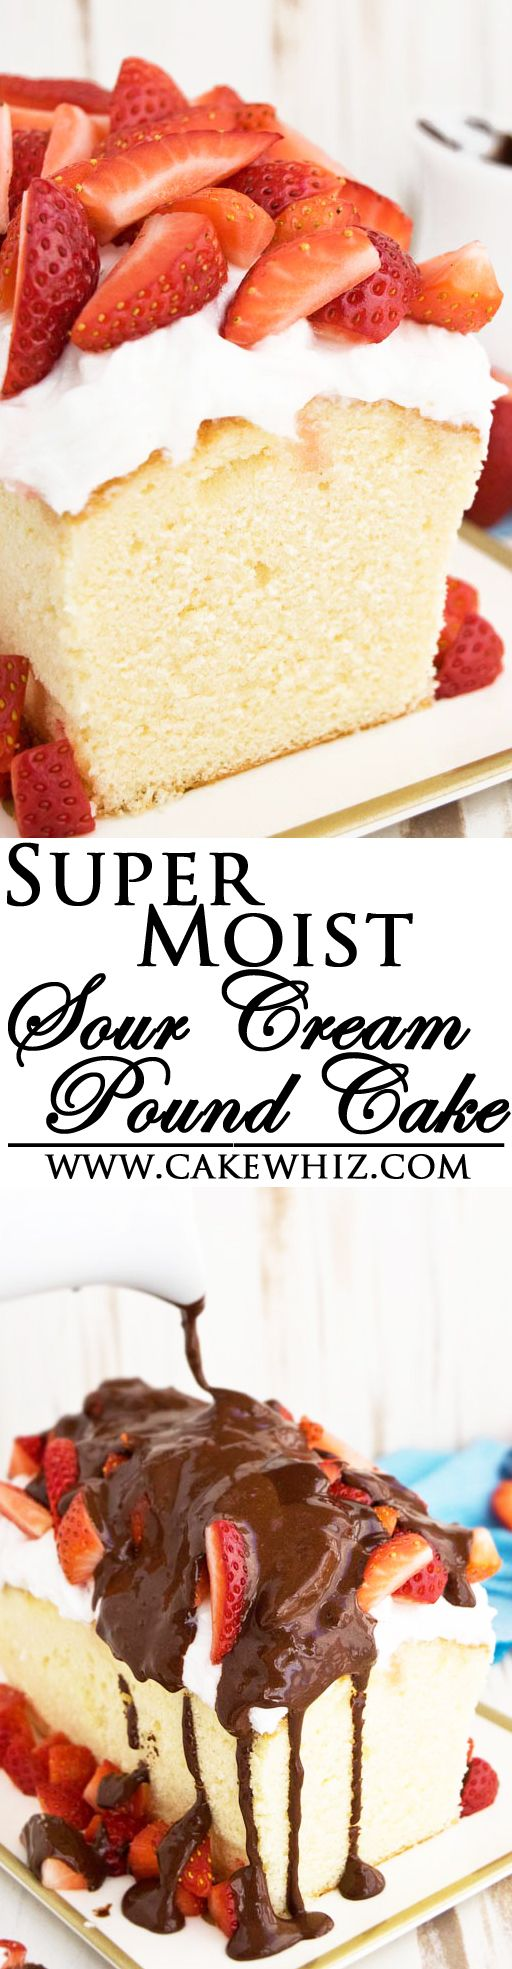 This CLASSIC SOUR CREAM POUND CAKE recipe is firm and dense but still very moist. Perfect for carving and cake decorating or just serving with whipped cream and fresh fruits!